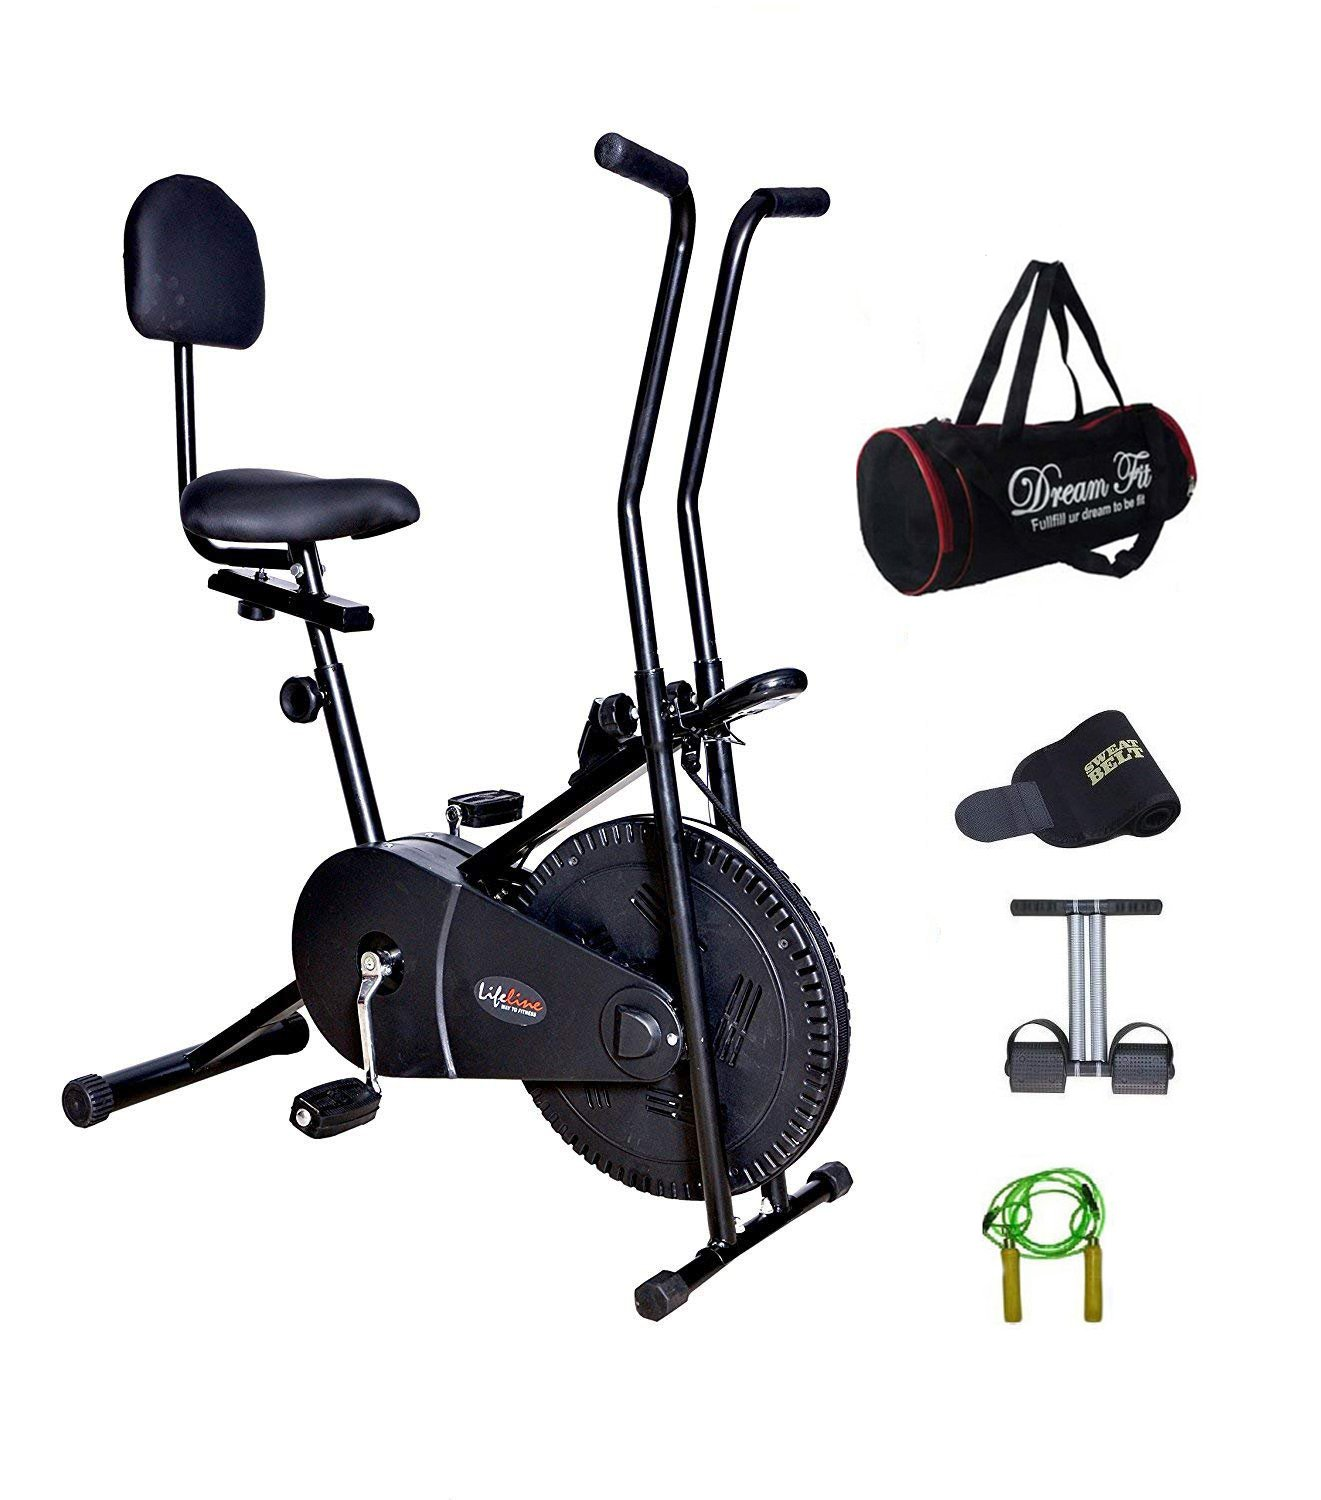 Lifeline 102 Best Exercise Cycle In India